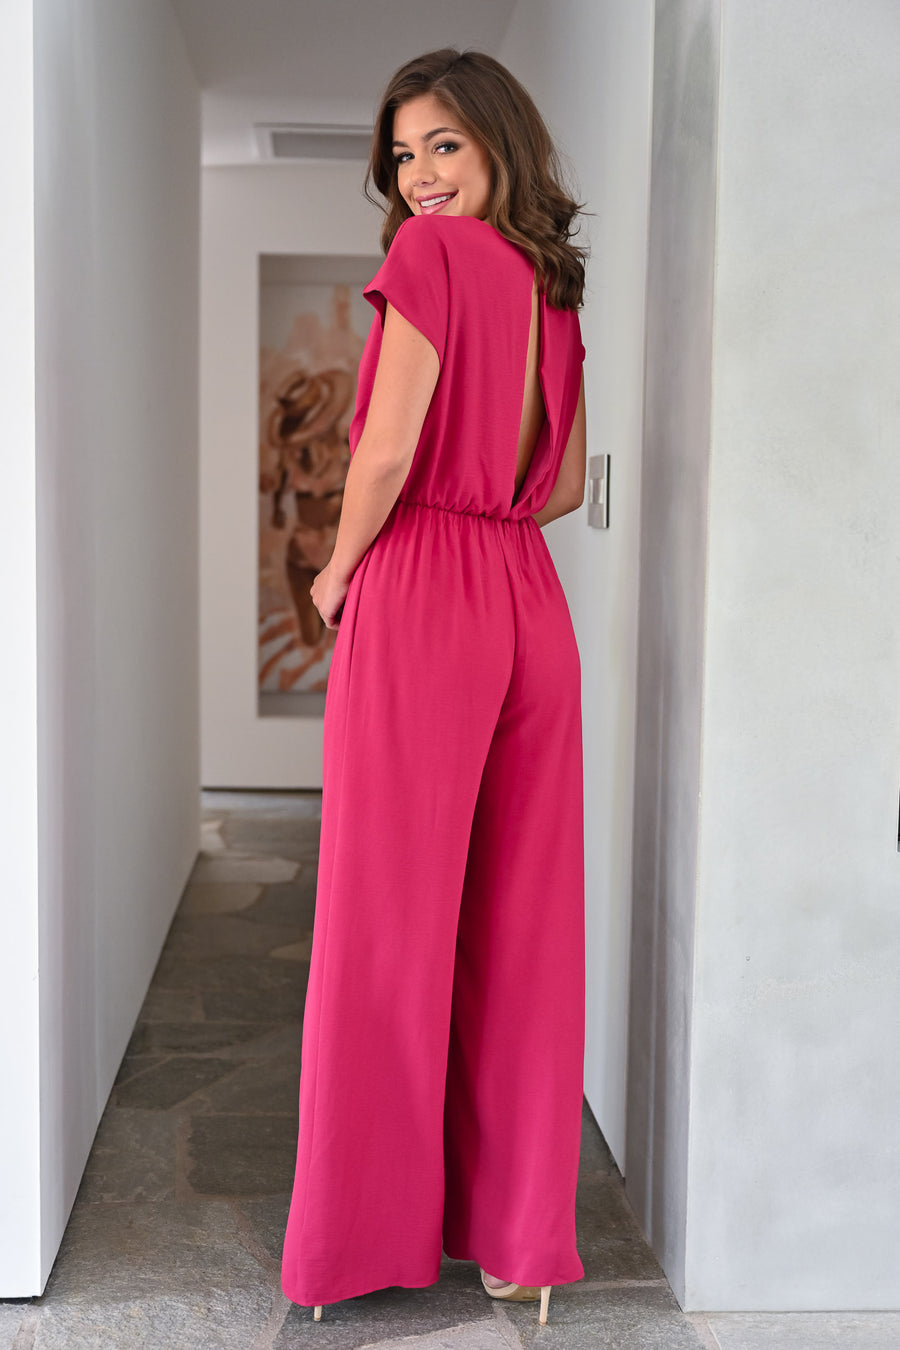 After Sunset Jumpsuit - Berry womens trendy short sleeve tie front long jumper closet candy front; Model: Hannah Sluss